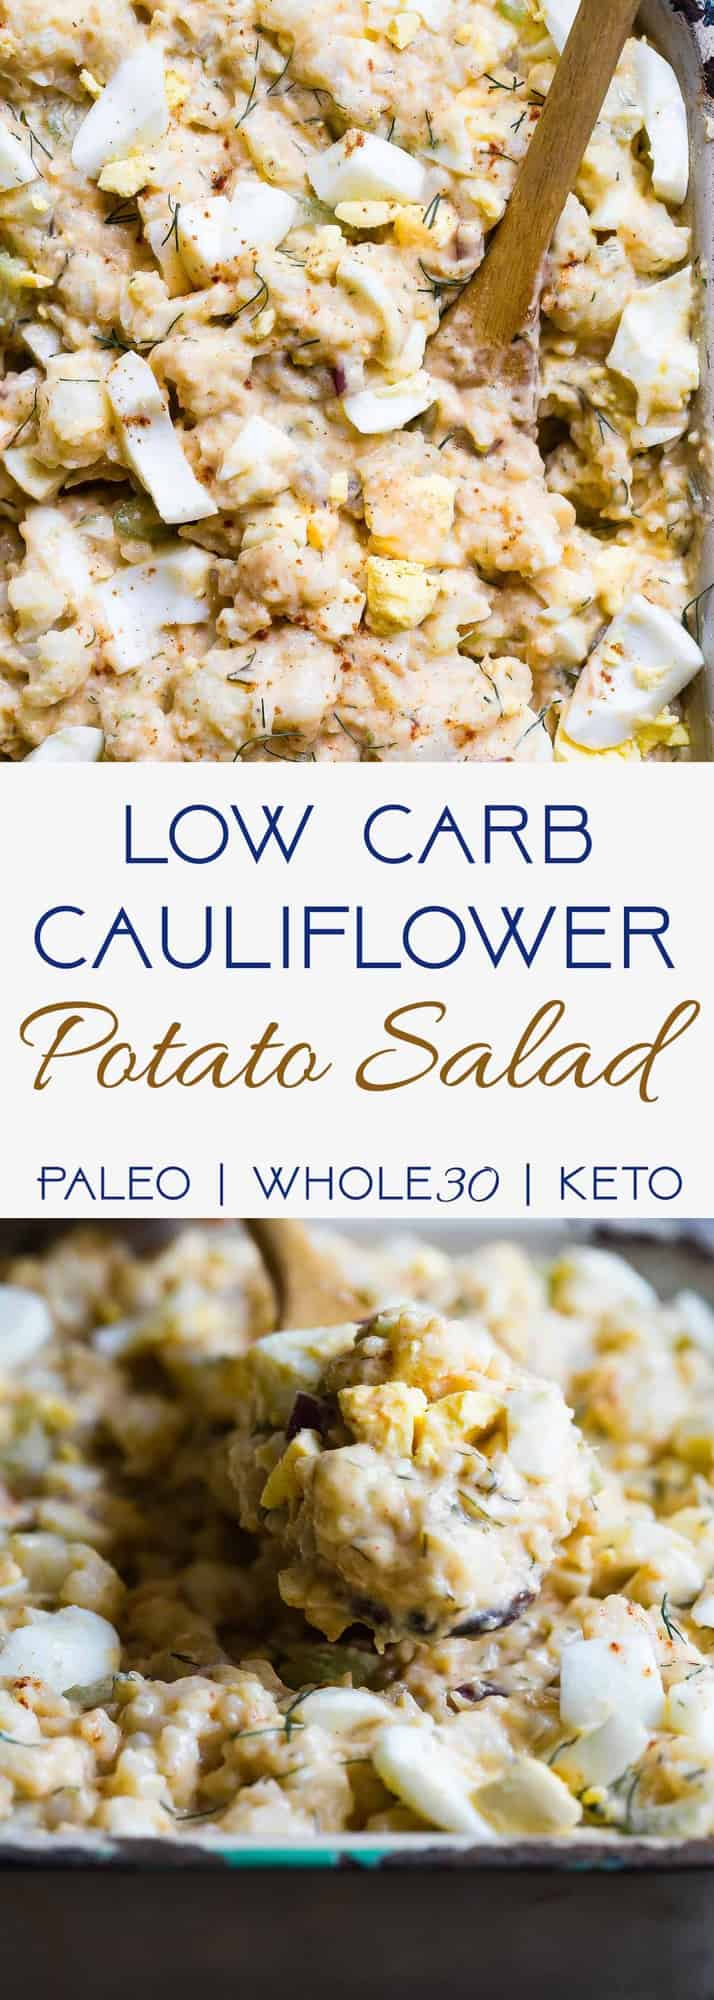 Low Carb Cauliflower Potato Salad -This keto, paleo and whole30Cauliflower Potato Salad tastes EXACTLY like the classic potato salad without the carbs! Everyone will be fooled by this healthy comfort food! | #Foodfaithfitness | #Paleo #Keto #Glutenfree #Lowcarb #Whole30